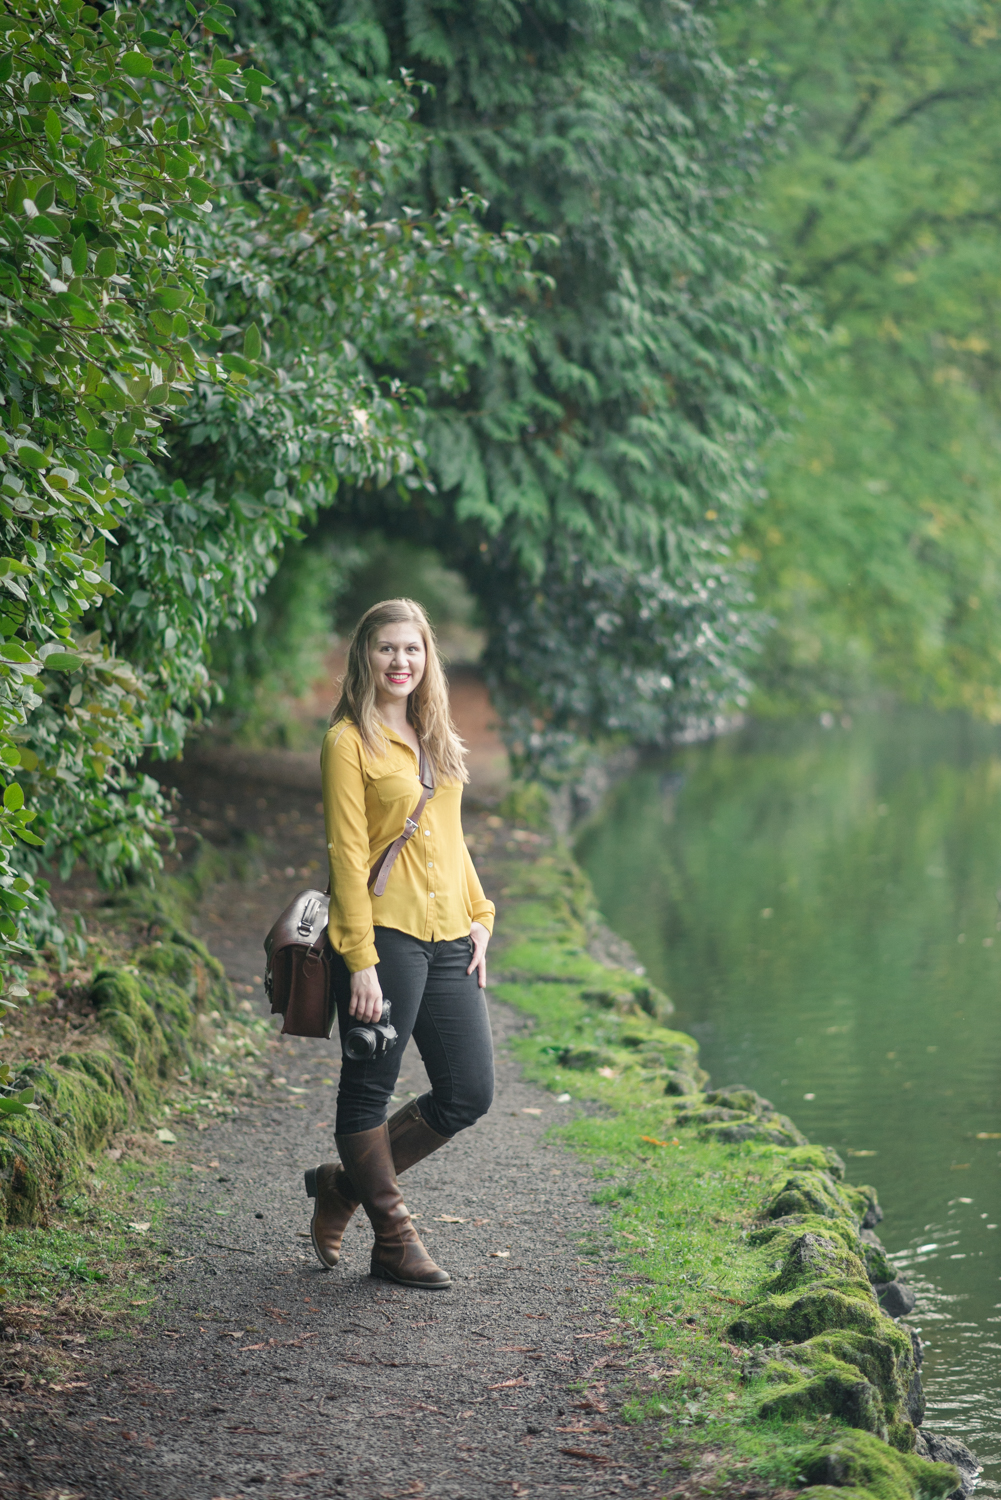 senior-portrait-photography-portland-oregon-laurelhurst-park-shelley-marie-photo-9.jpg